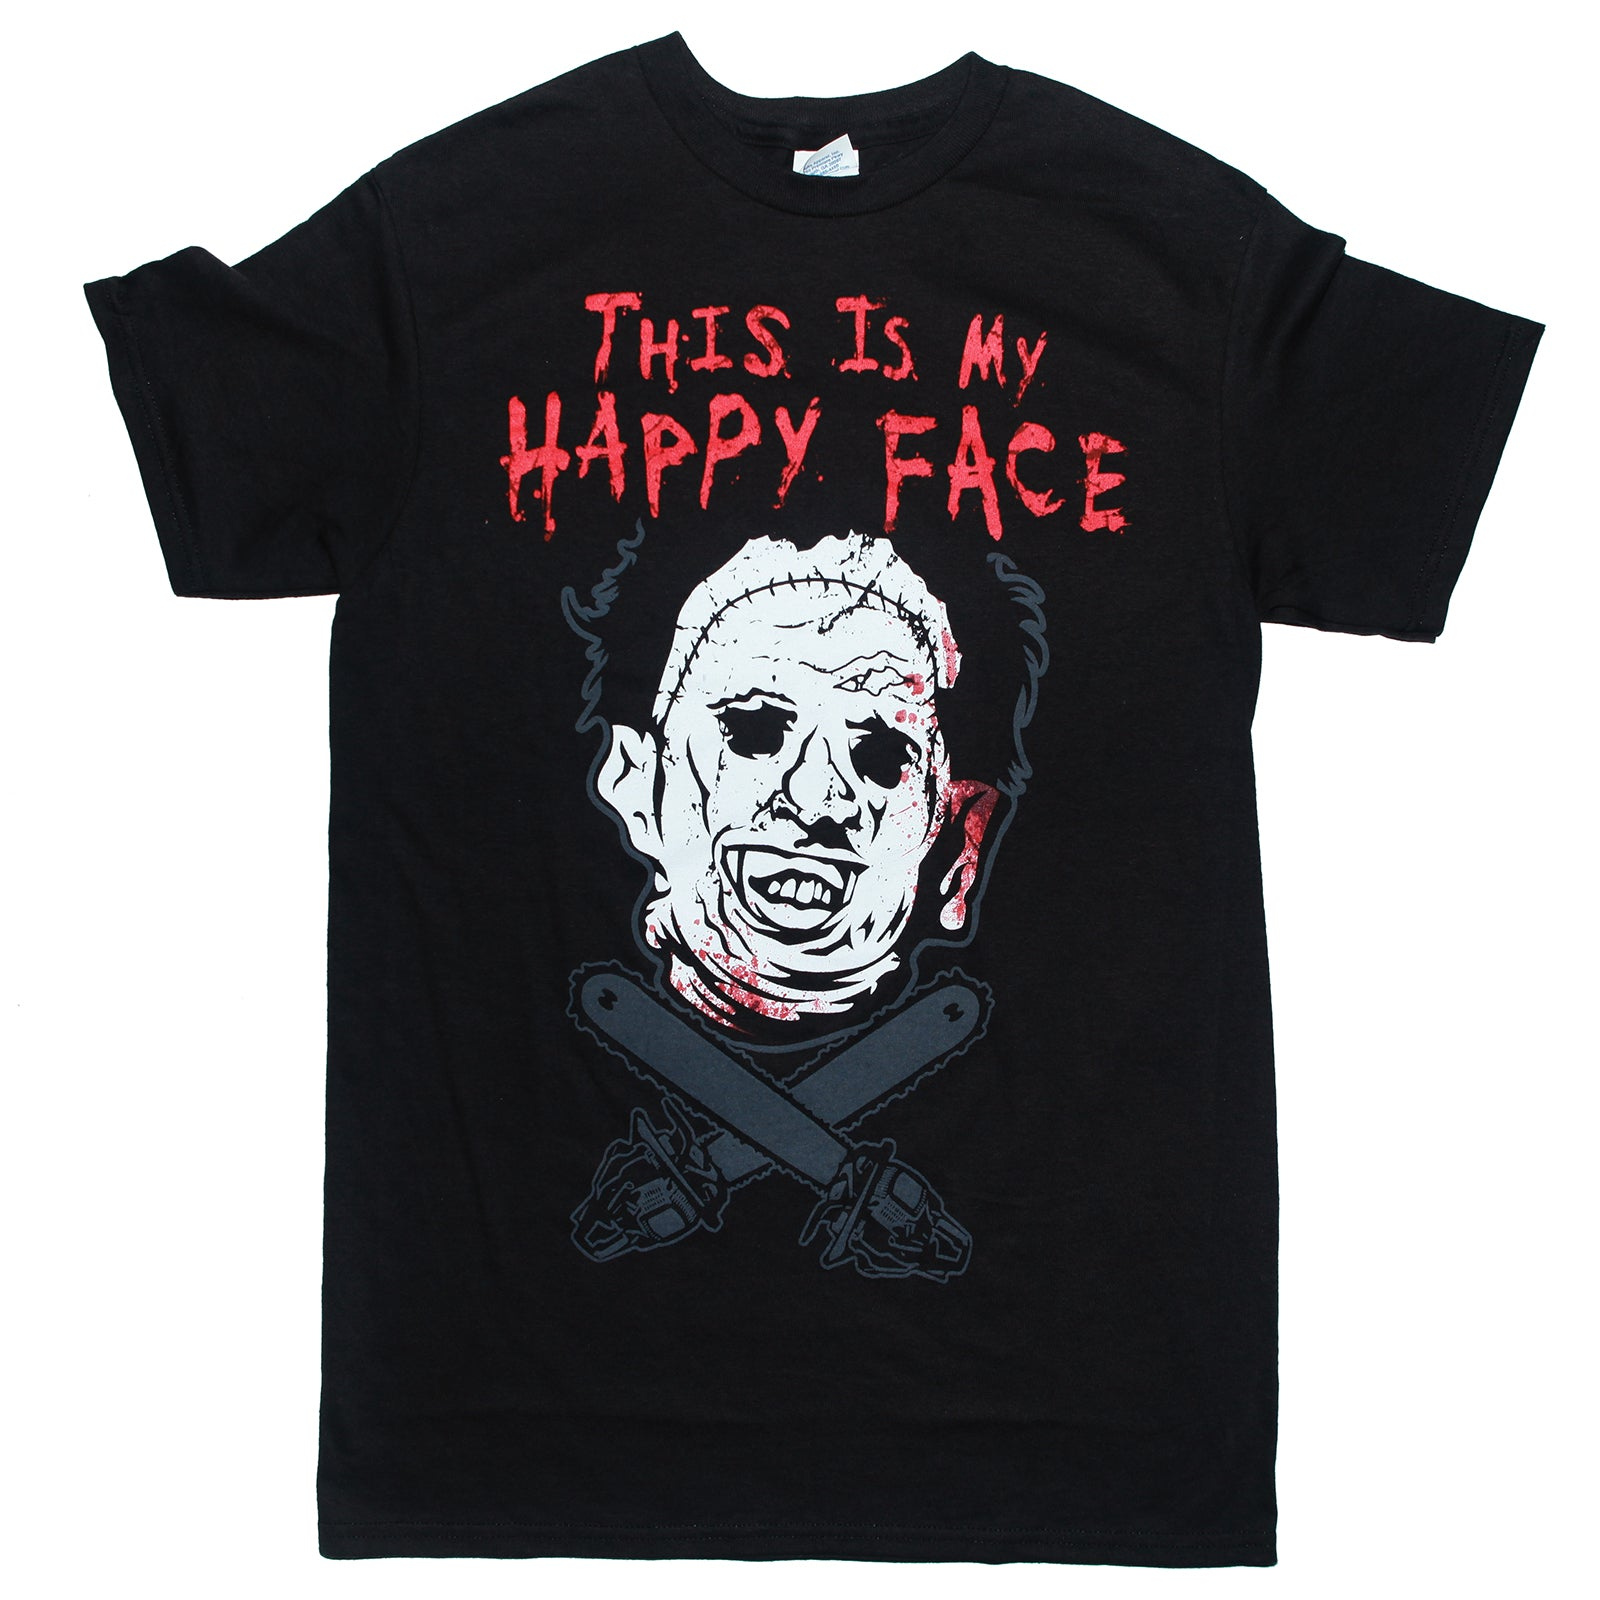 The Texas Chain Saw Massacre LEATHERFACE HAPPY FACE T Shirt